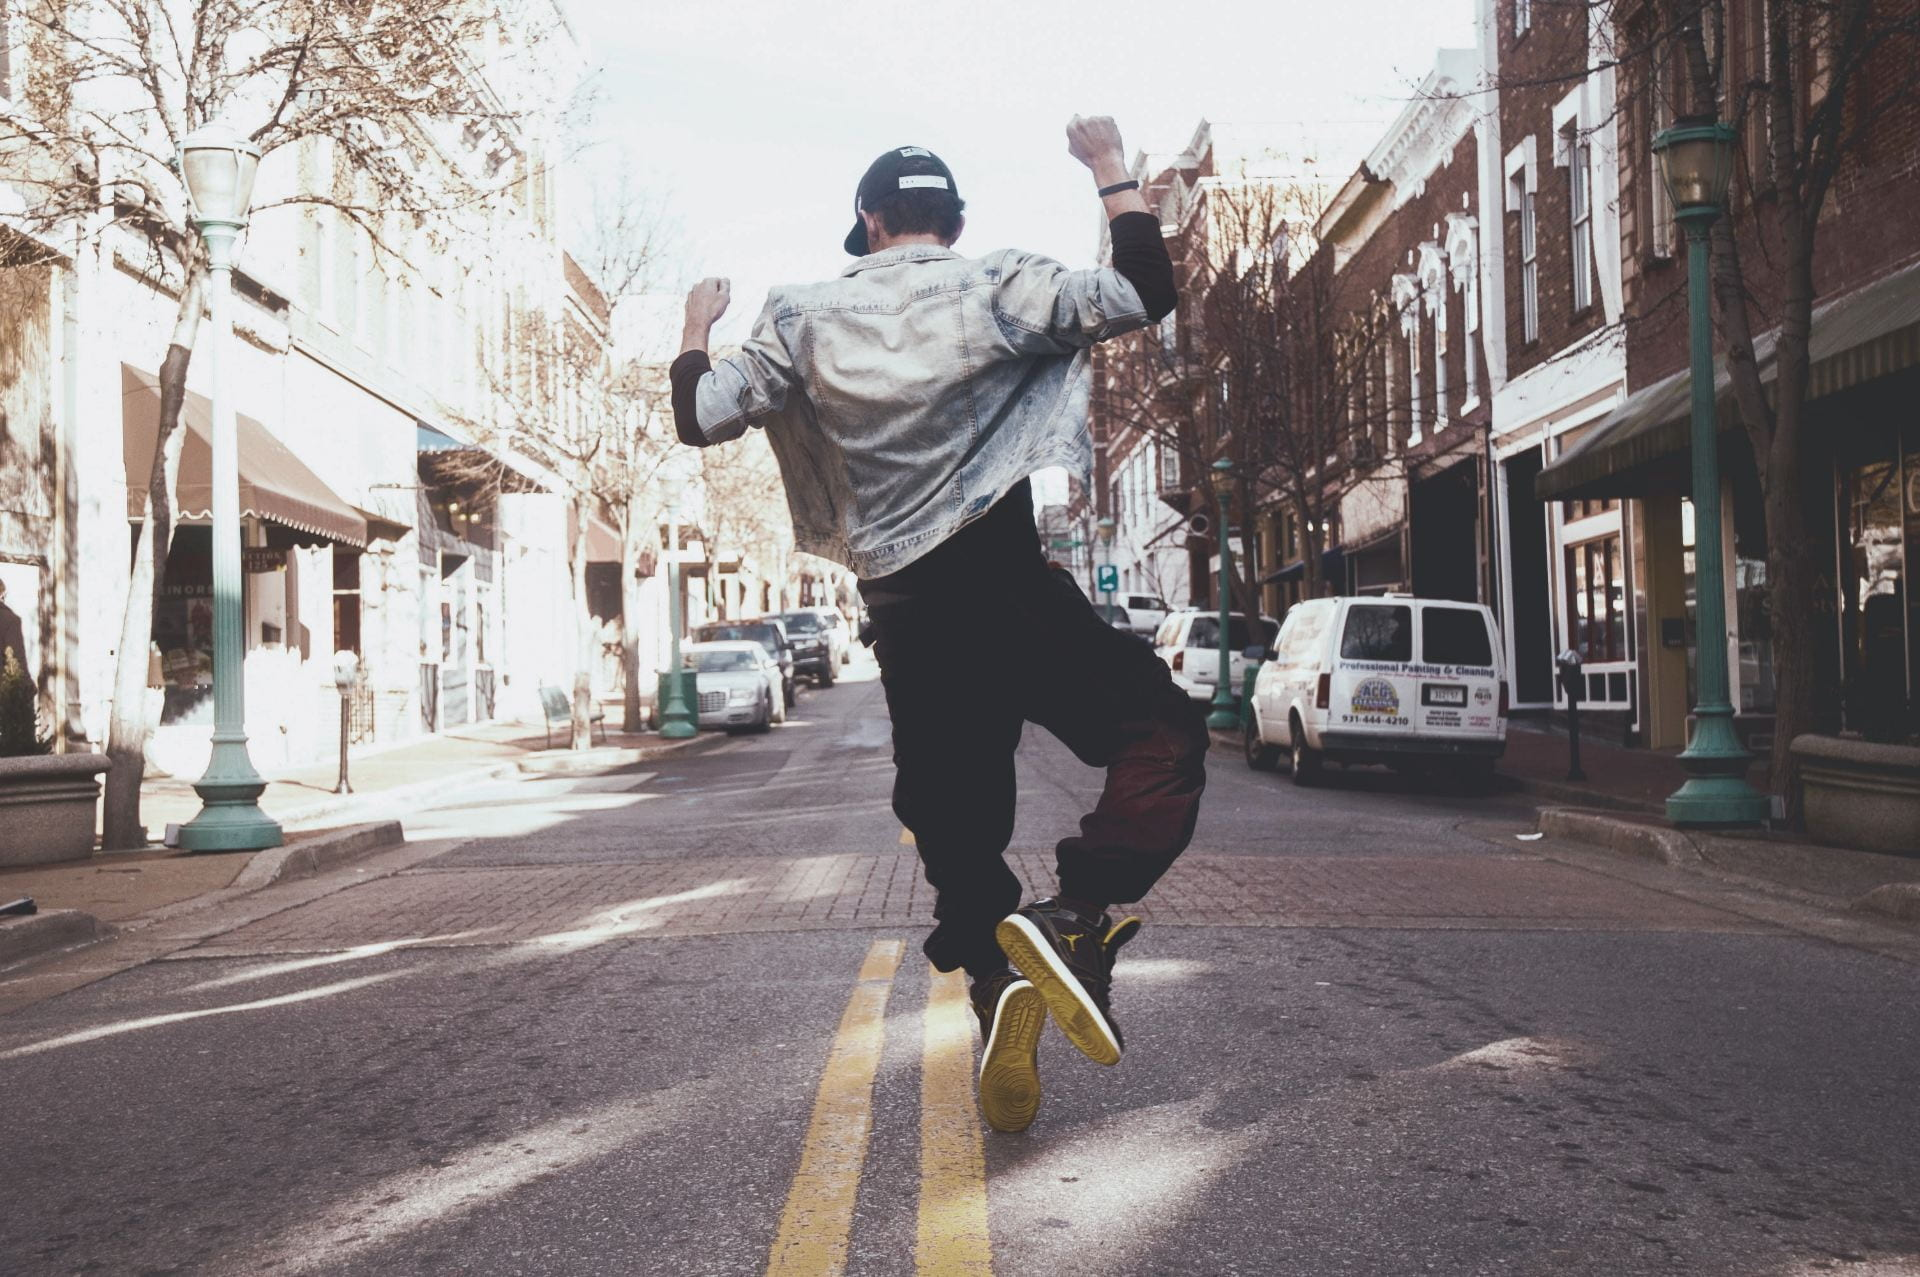 Man jumping for joy down a city street.